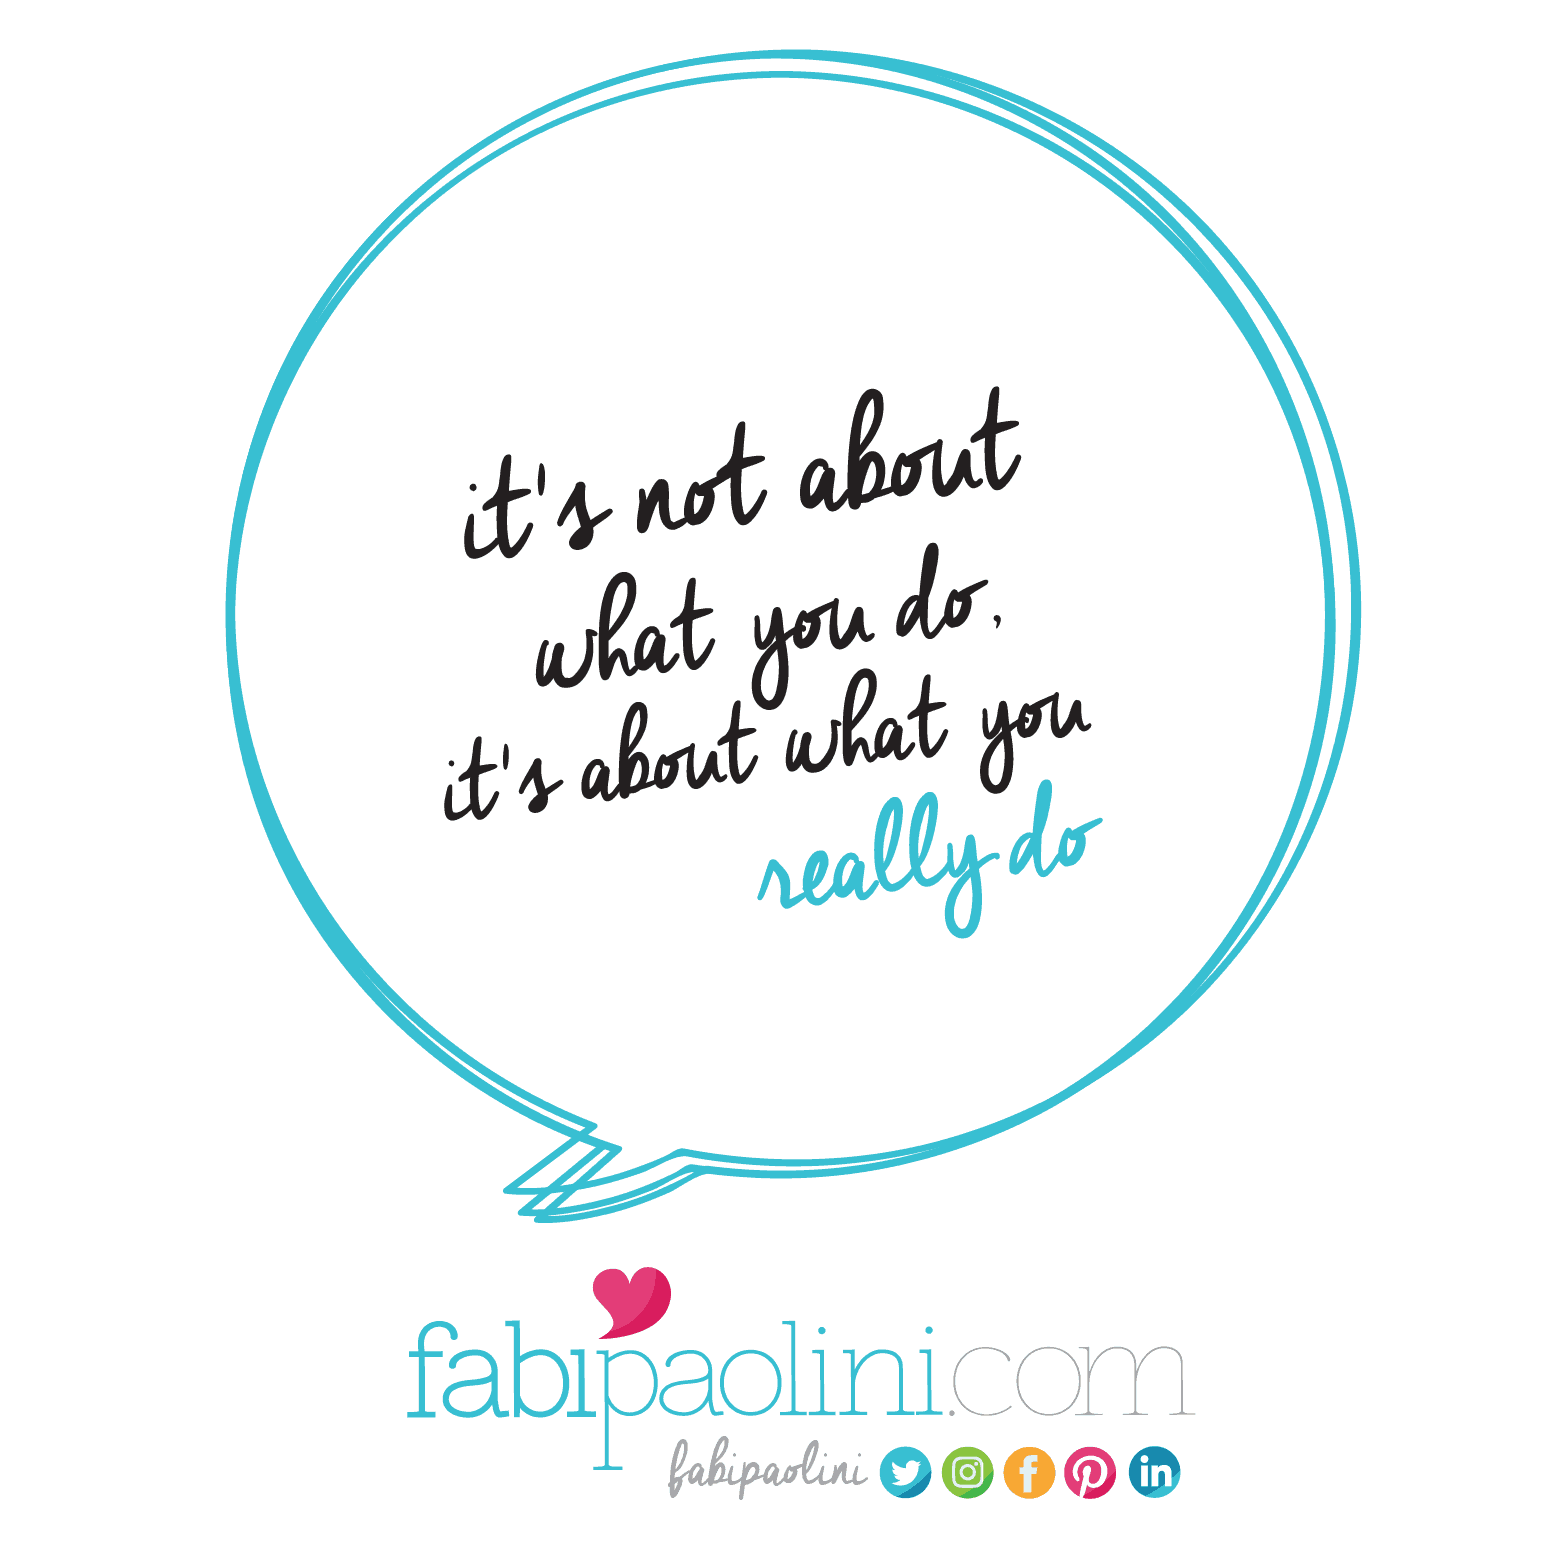 It's not about what you do, it's about what you really do. Fabi Paolini Branding + Design + Entrepreneur. Transform your business